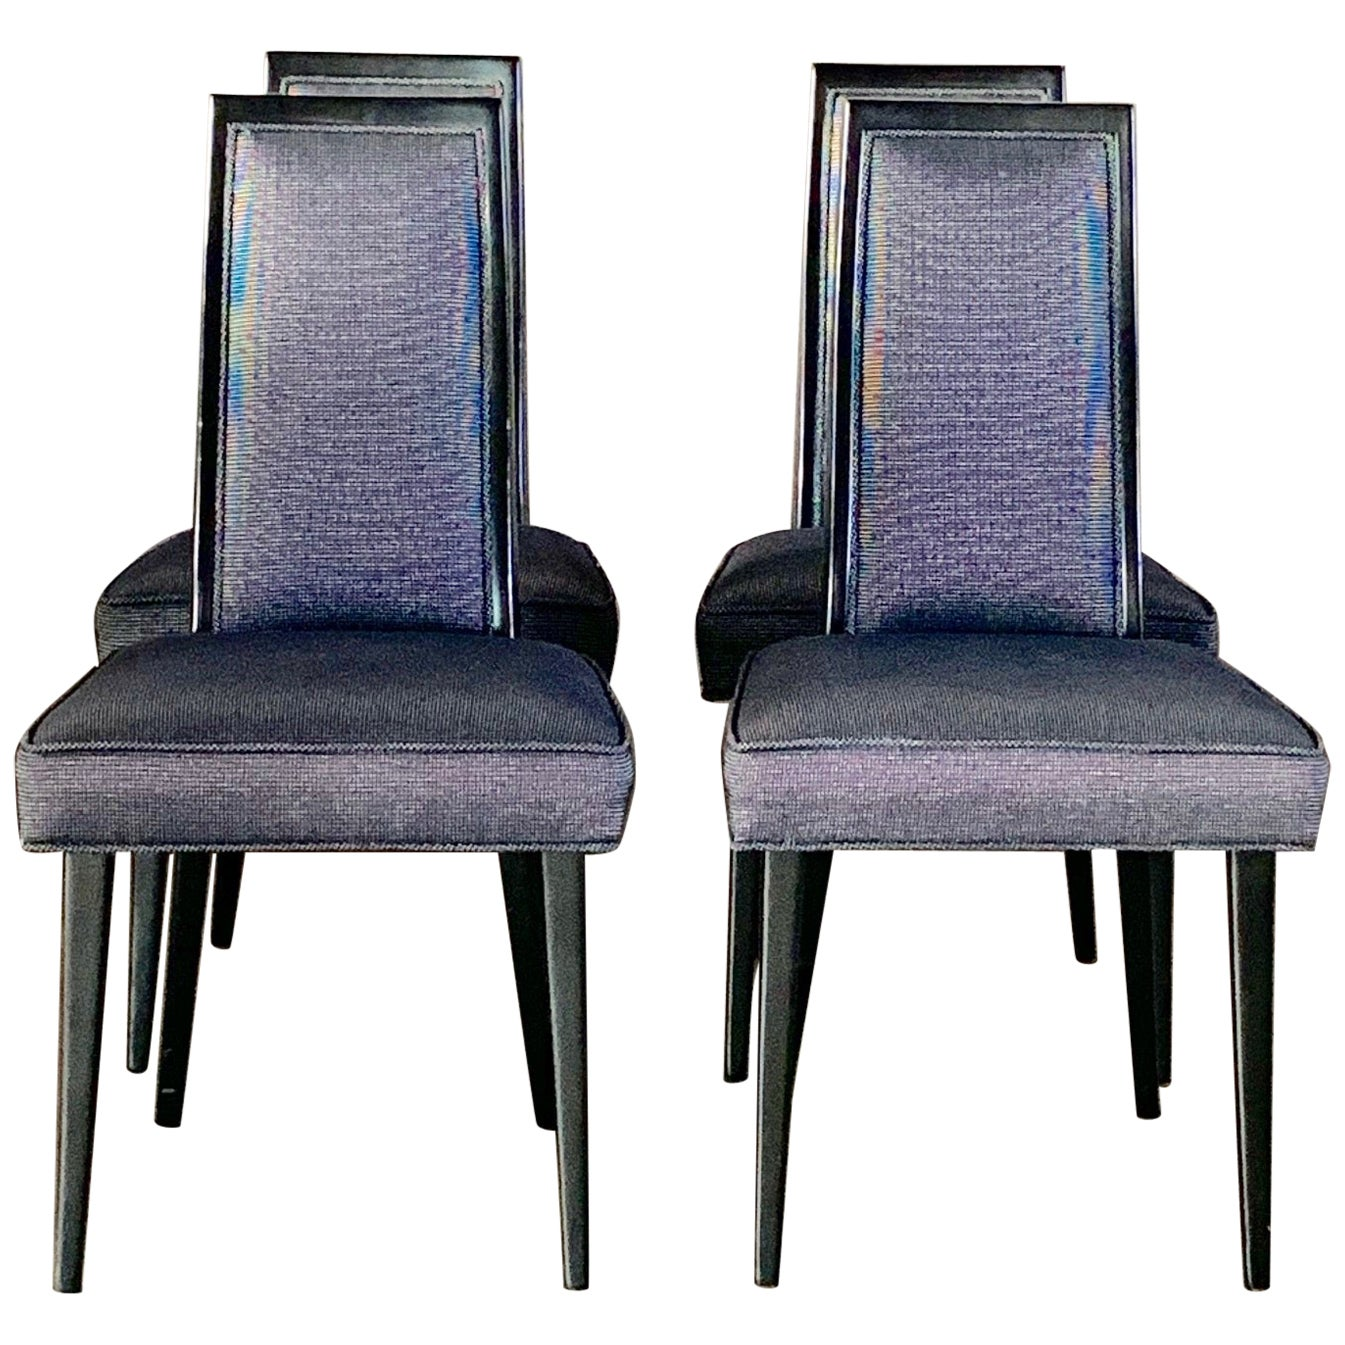 Set of Four Elegant Dining Chairs by Harvey Probber